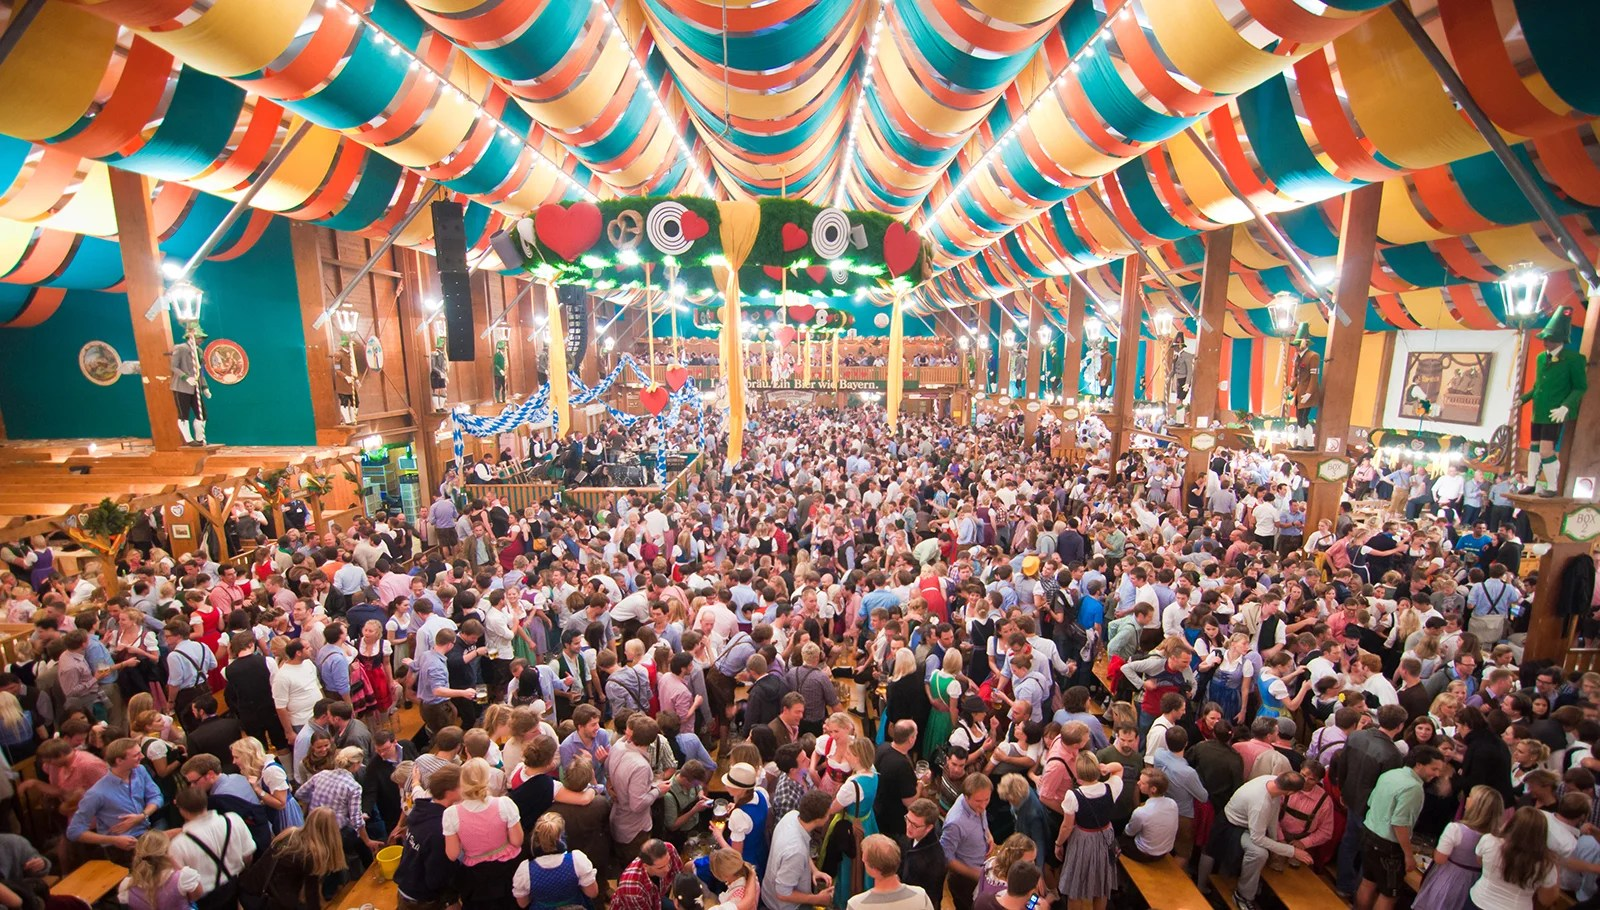 Miles Away Episode 25: It's Time to Plan Your Trip to Oktoberfest